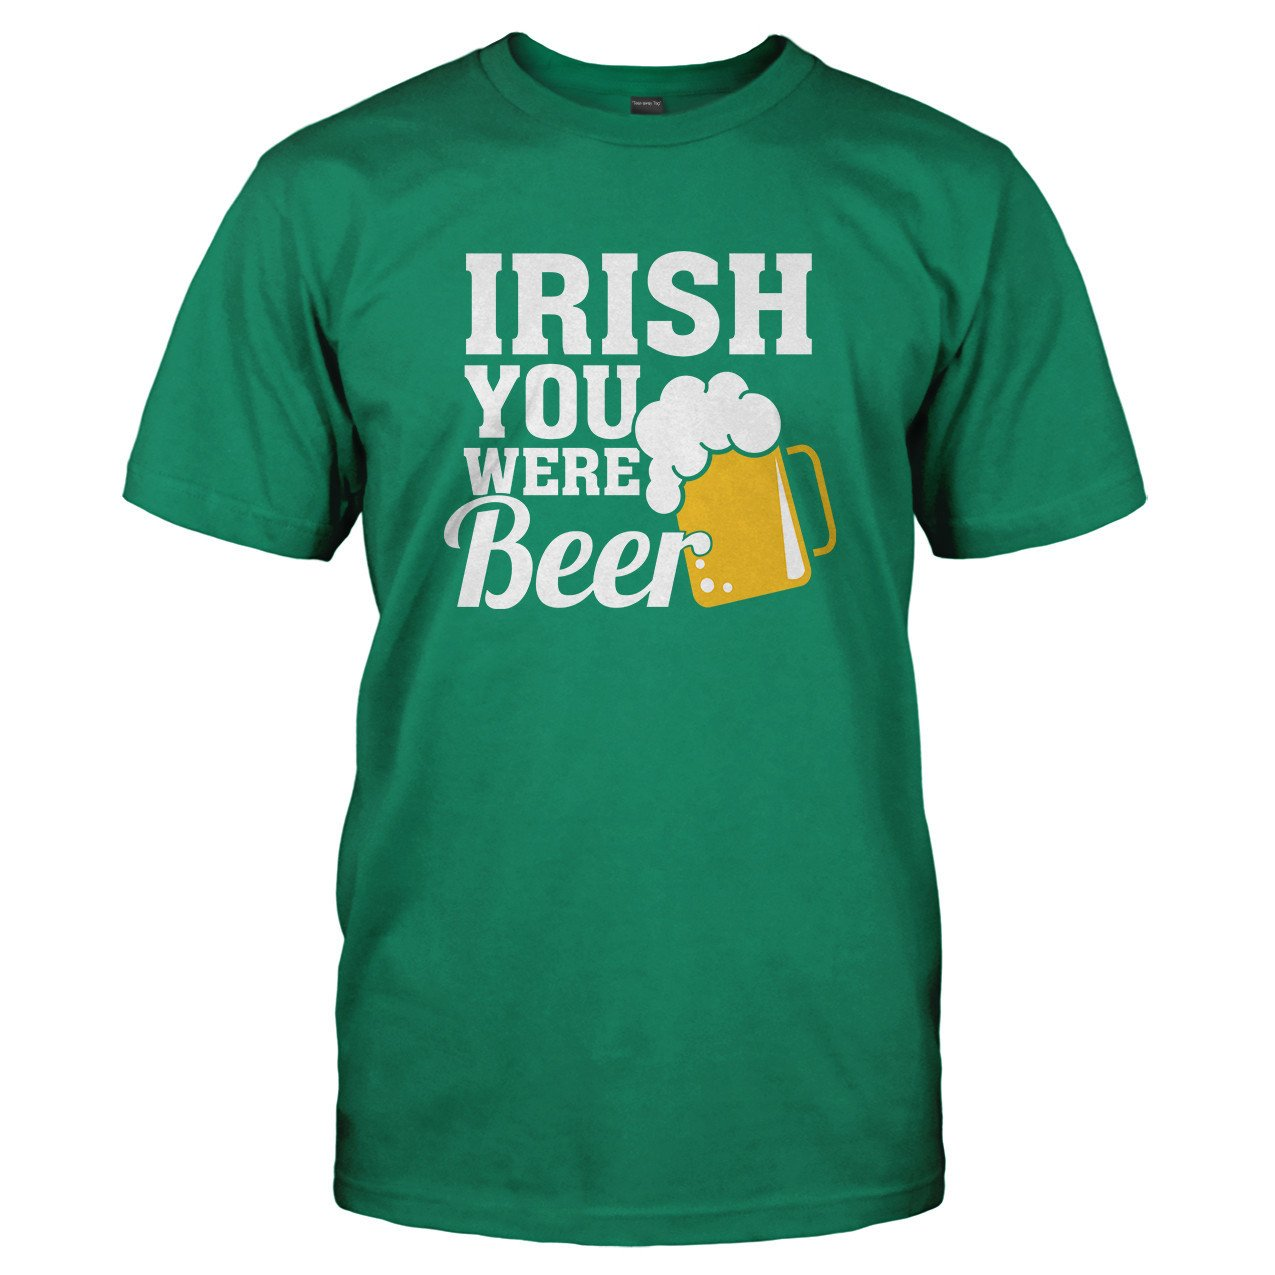 Irish You Were Beer - T Shirt